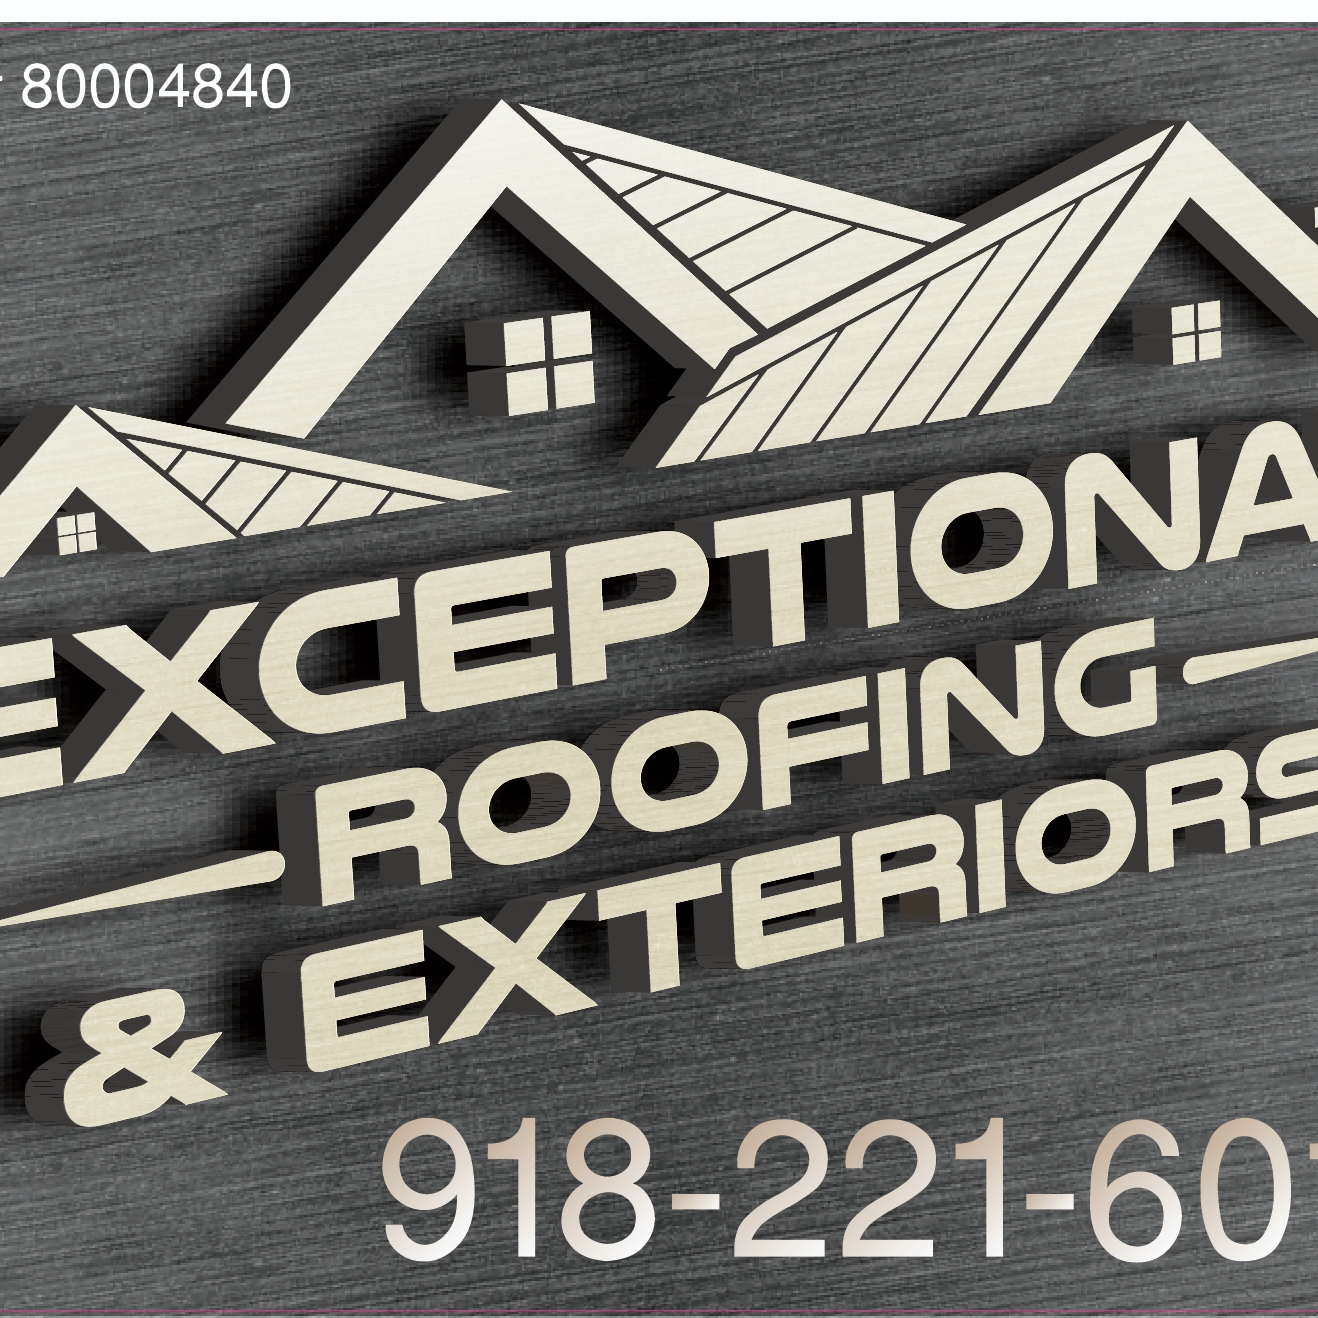 Exceptional Roofing & Exteriors logo